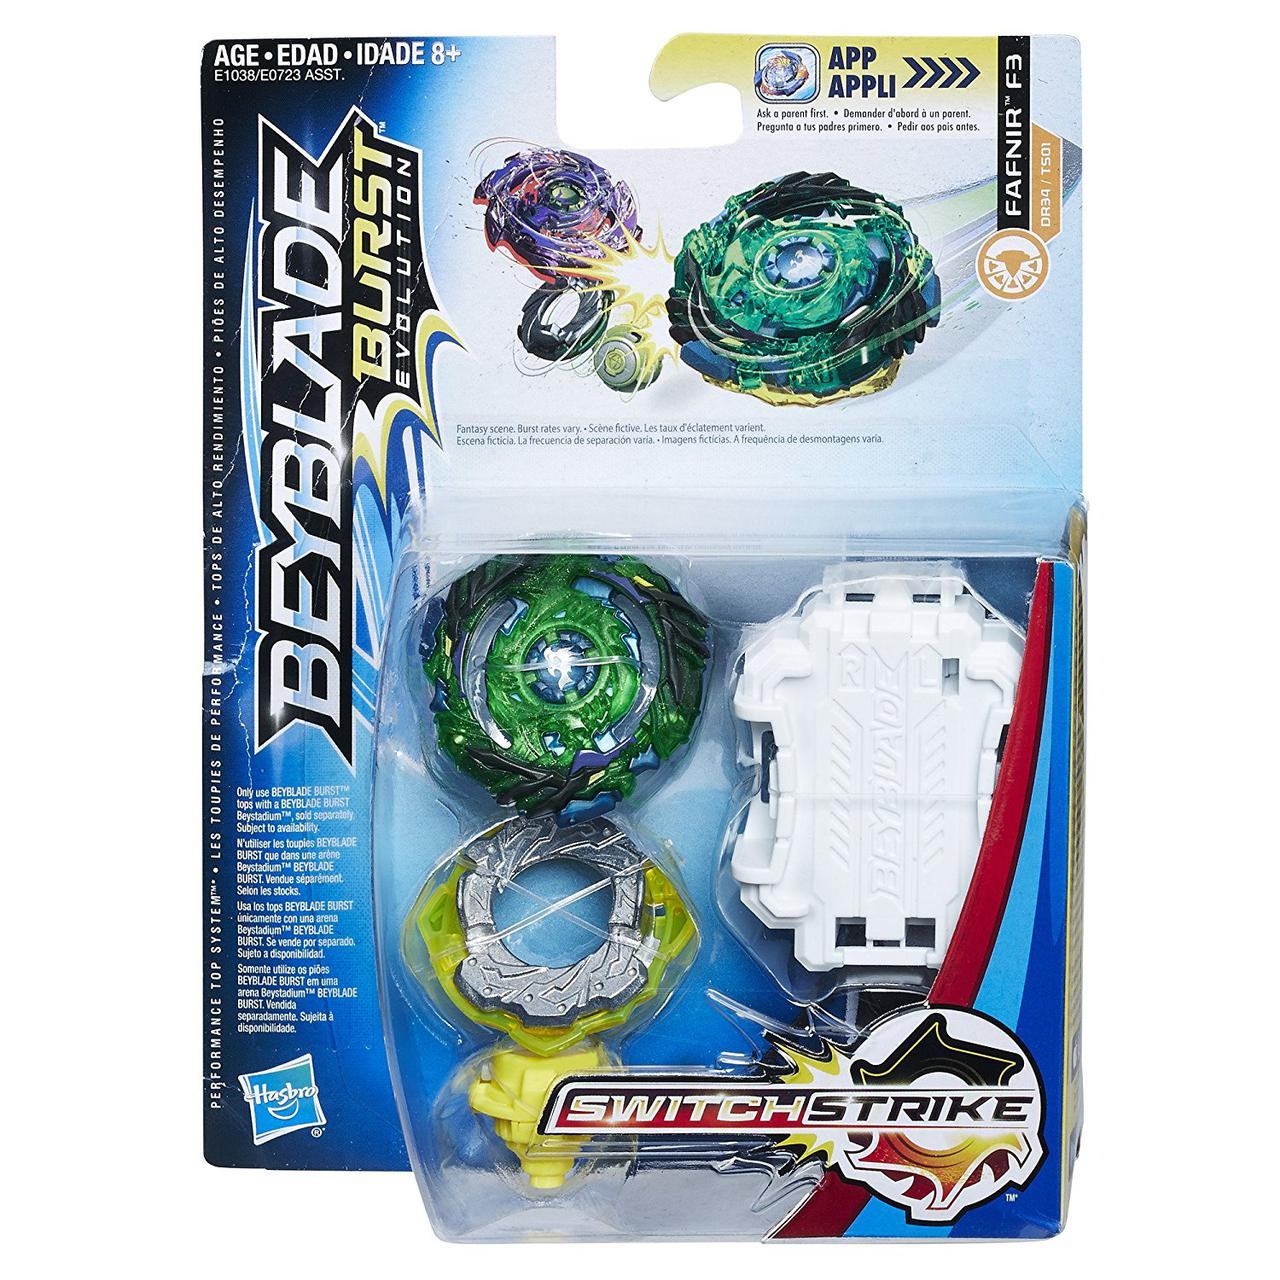 HASBRO Бейблэйд Фафнир F3 Эволюция, Beyblade Burst Evolution SwitchStrike Fafnir F3, оригинал из США